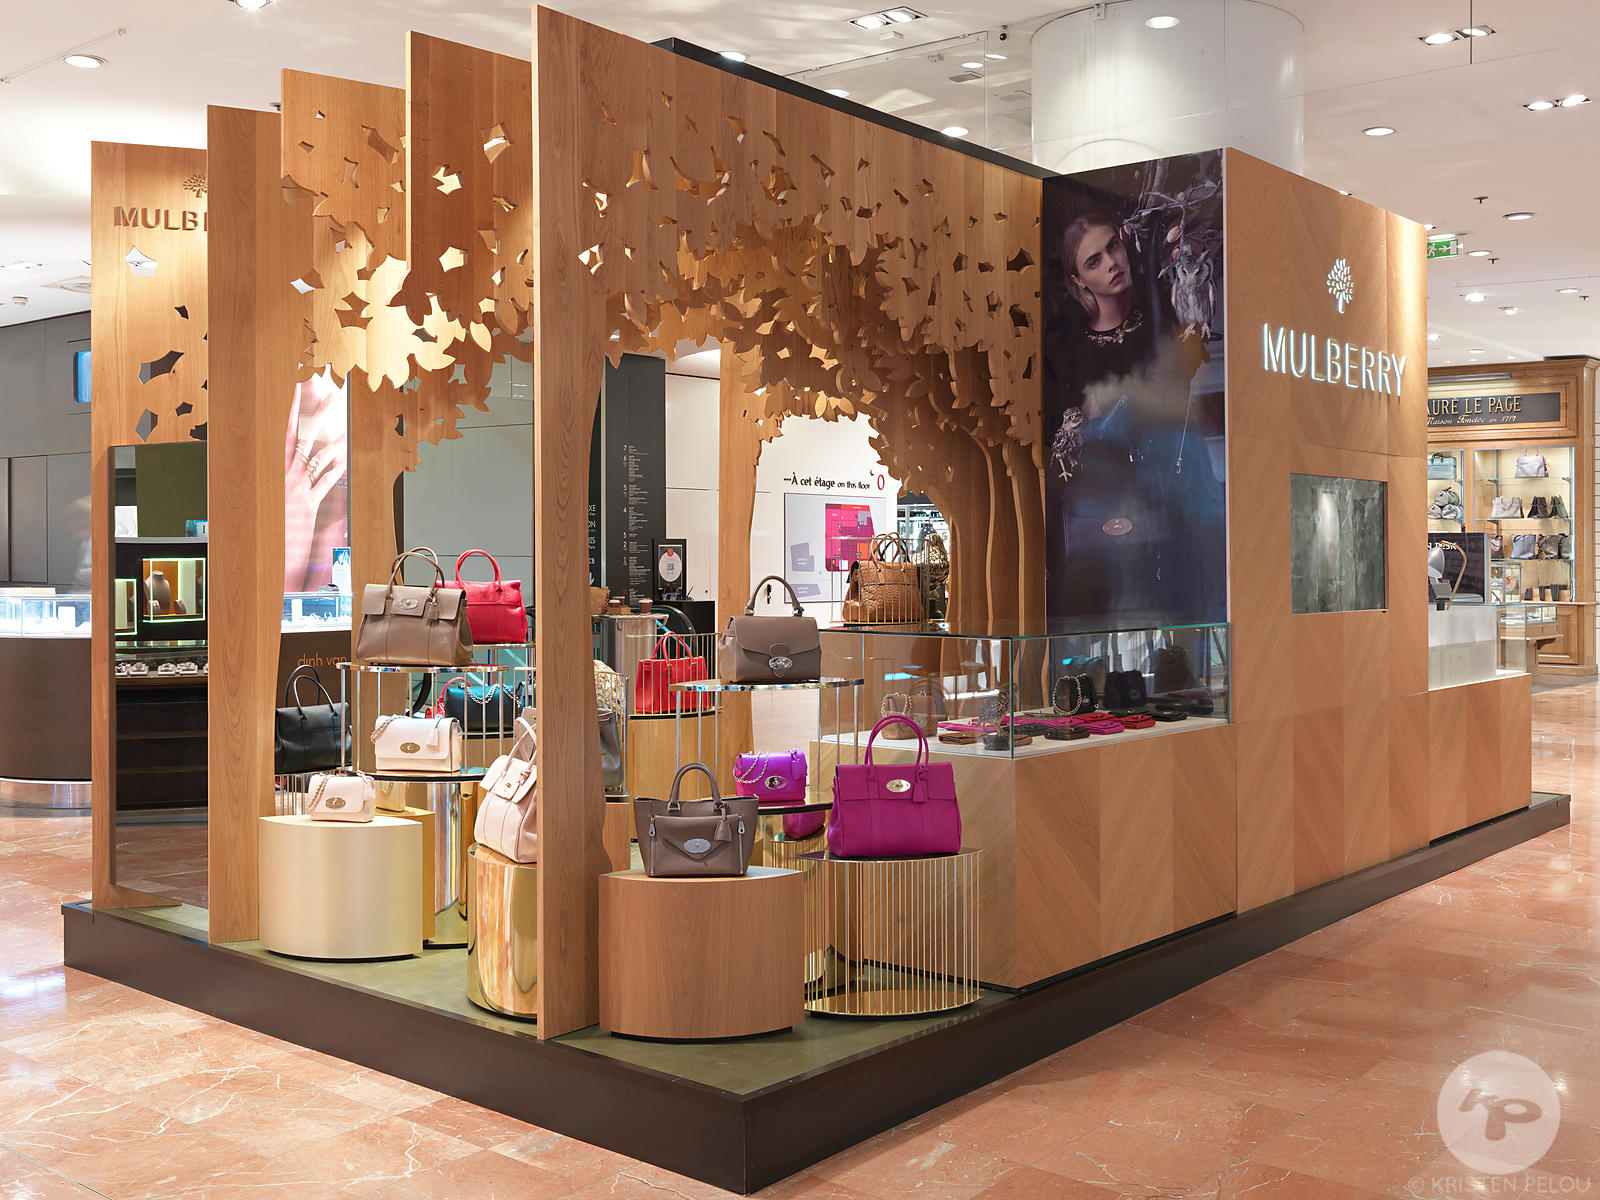 Mulberry Pop Up store, Galleries Lafayette, Paris France - Photo : Kristen Pelou